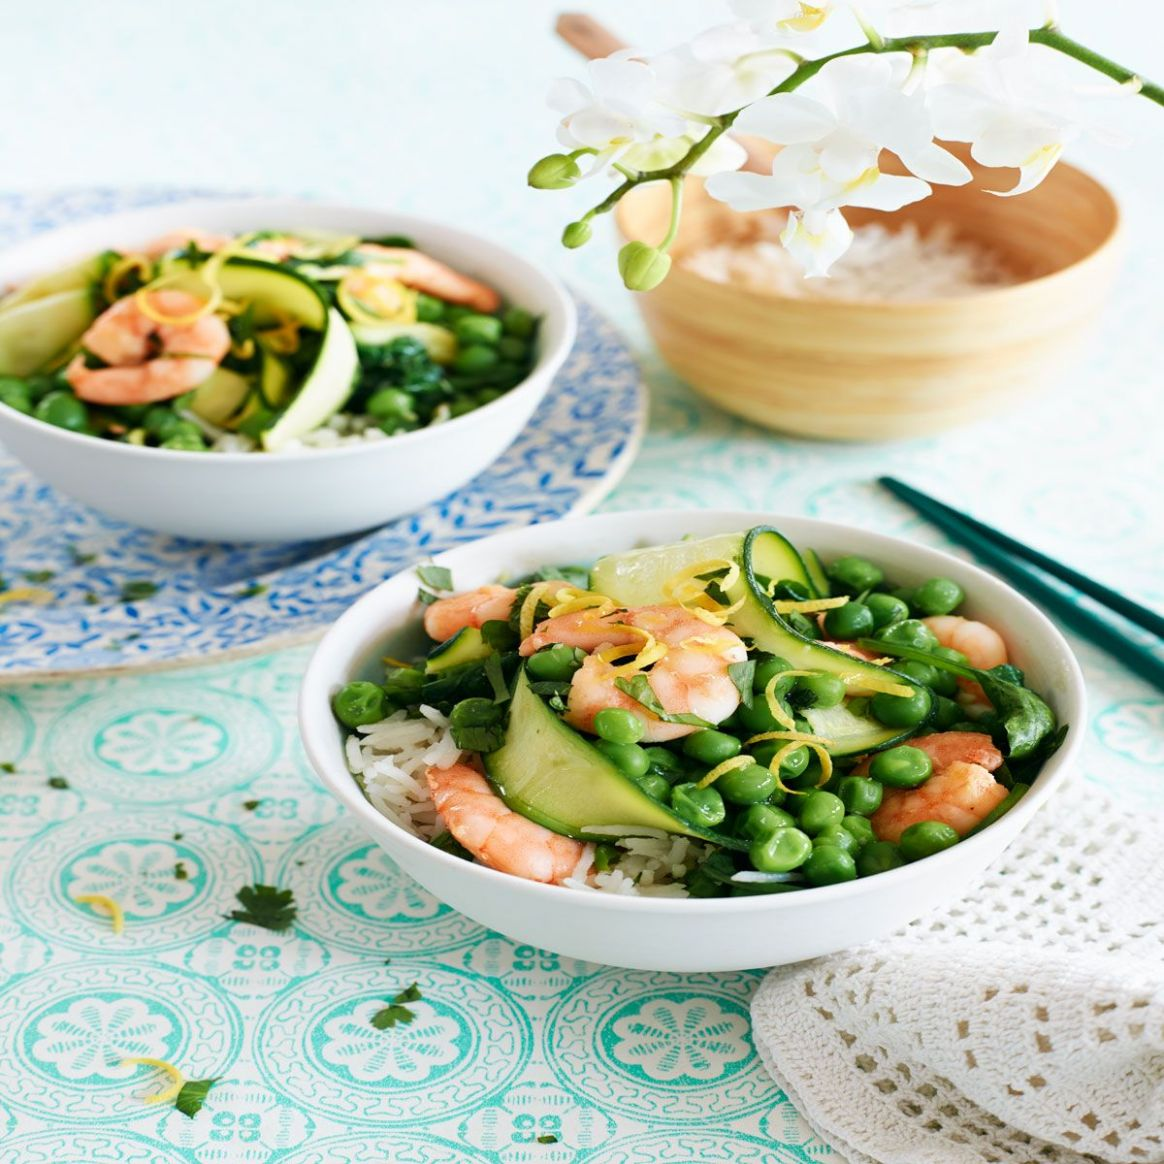 Courgette and prawn stir-fry - Summer Recipes Good Housekeeping